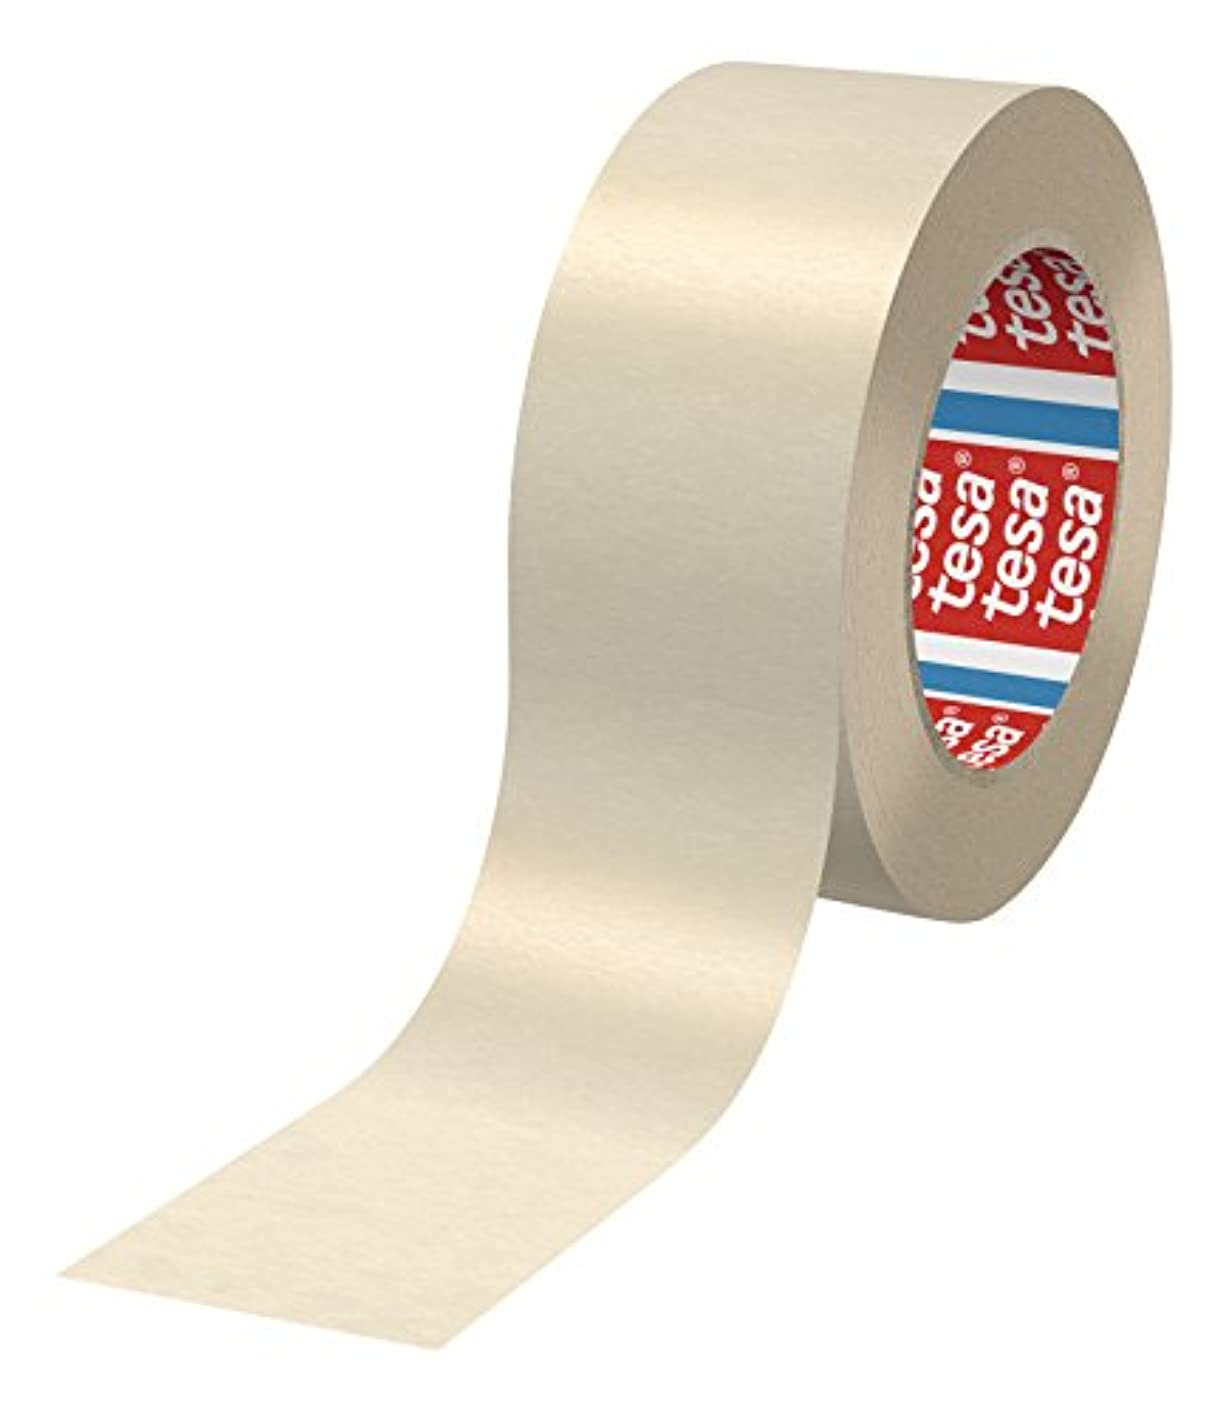 Tesa 4317?Flachgekr Epptes Painting Paper Masking Tape for Varnishing A Dry Up 80?Degree C, Gewerbliches Containers with 36 Rolls